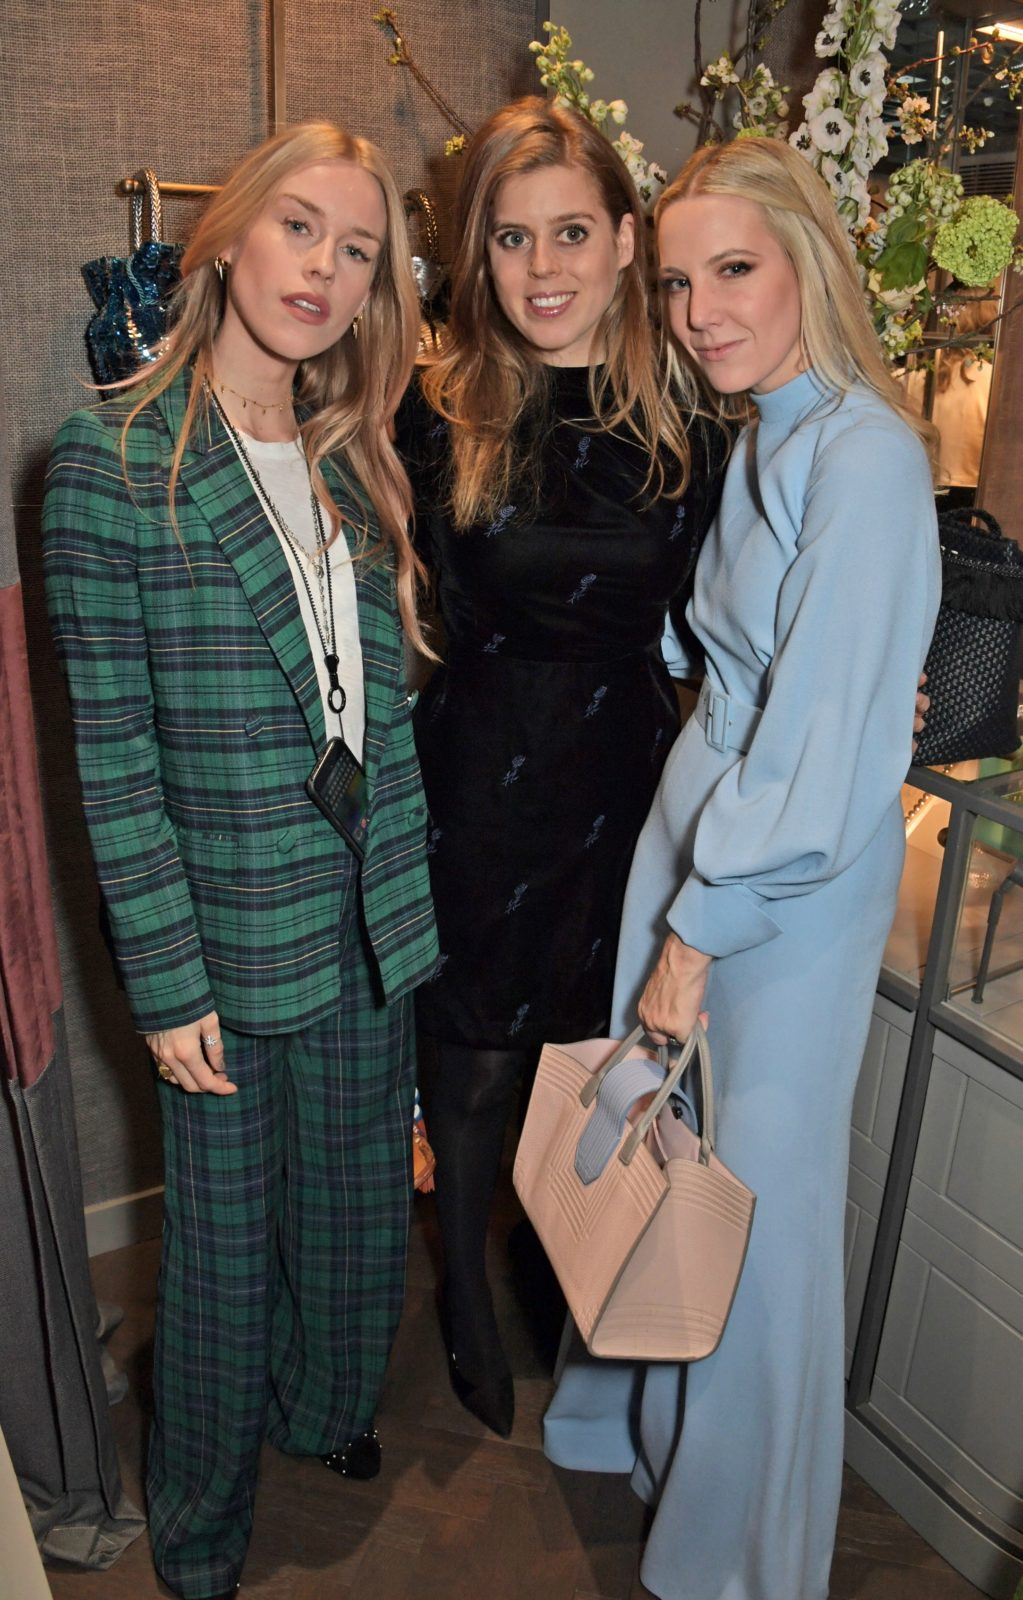 Mary Charteris, Princess Beatrice of York and Alice Naylor Leyland all posed together. Source: Getty.